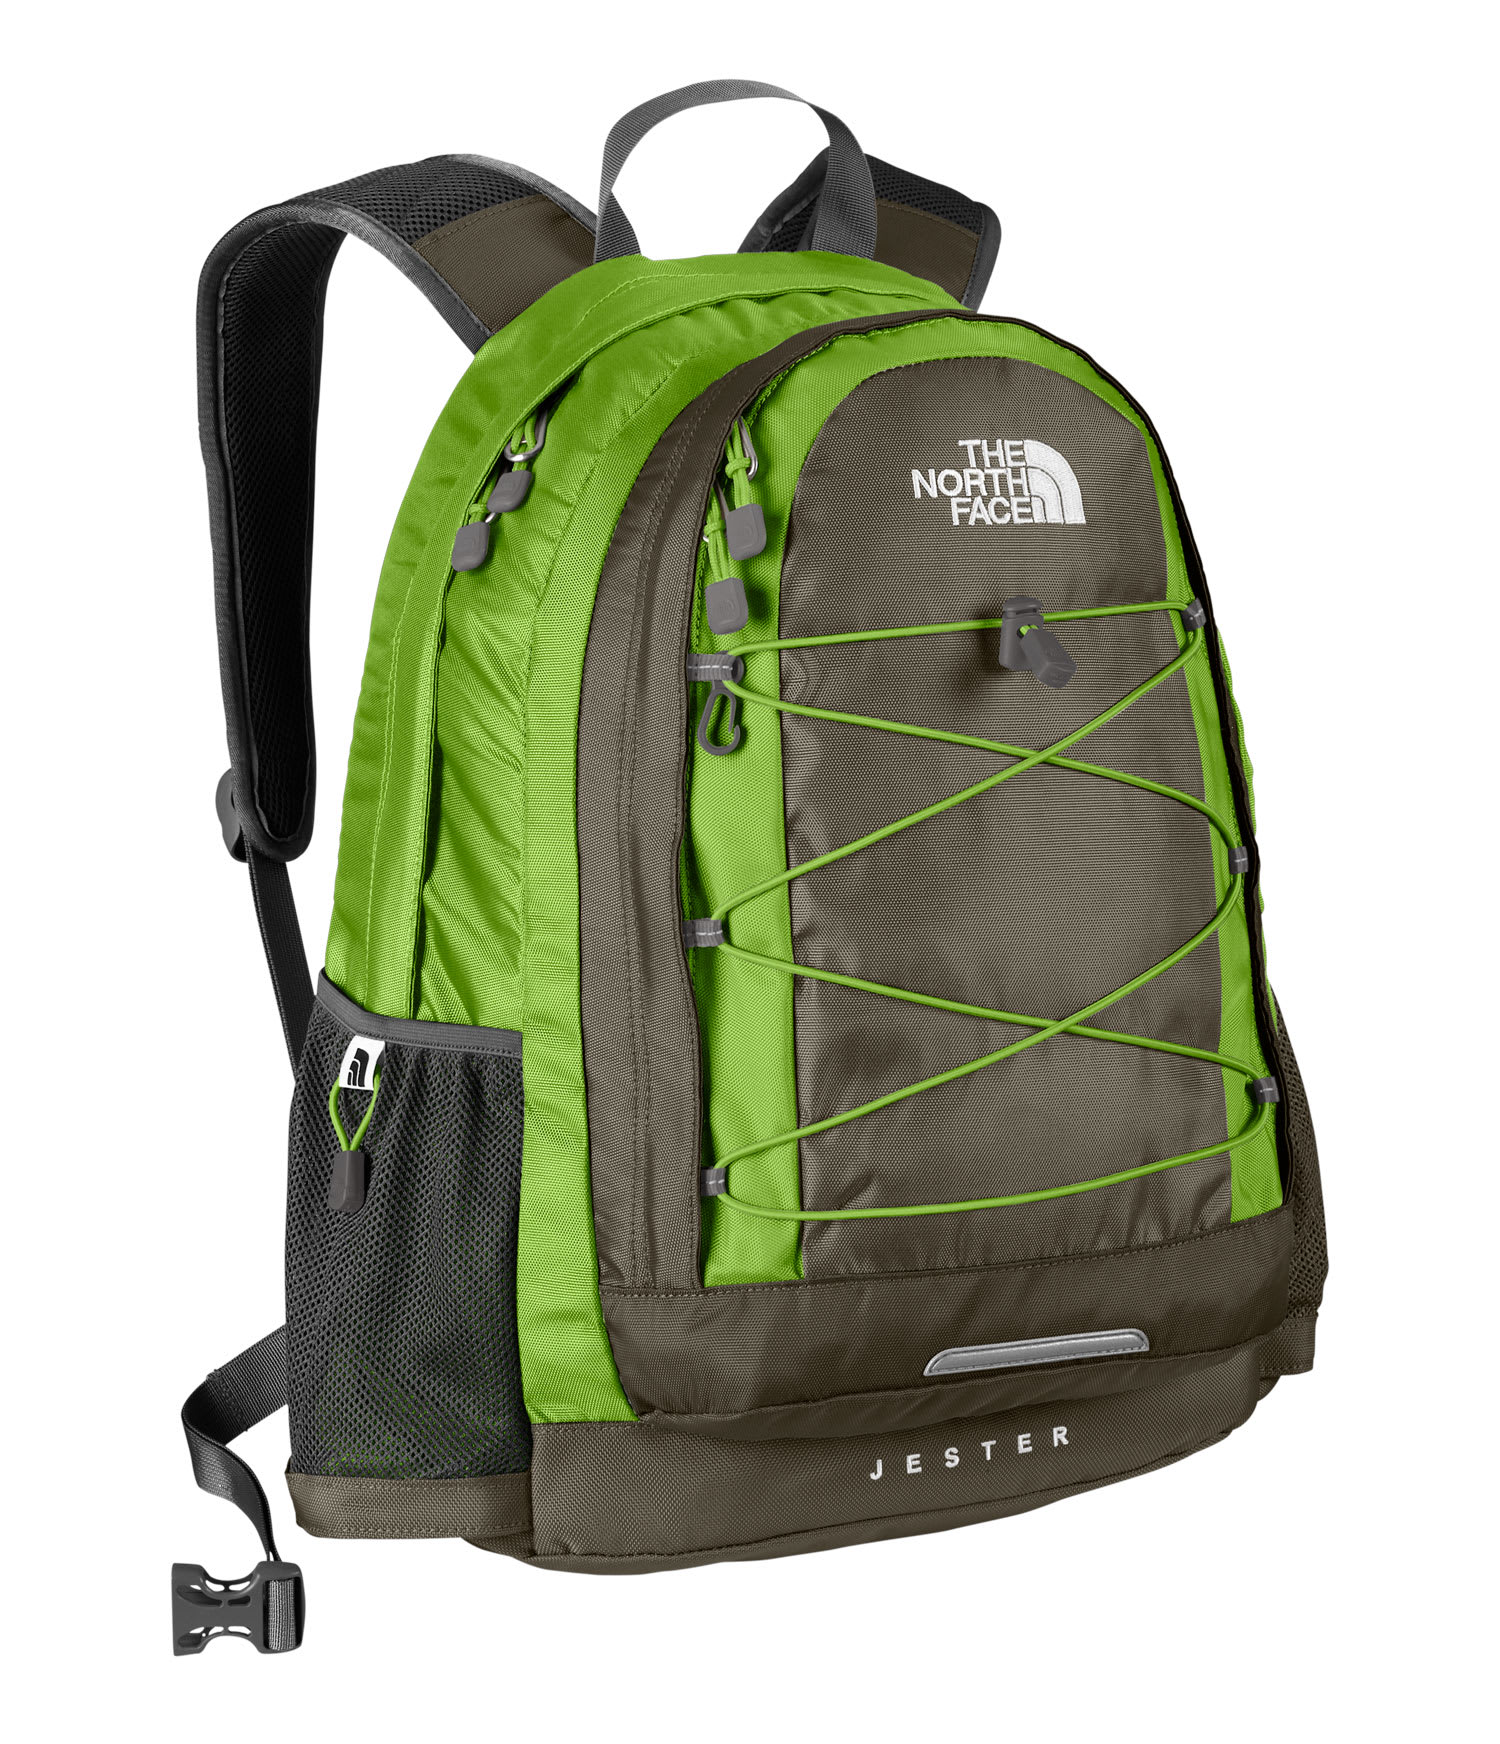 Shopzilla – Green Swissgear Backpack Backpacks shopping – Clothing